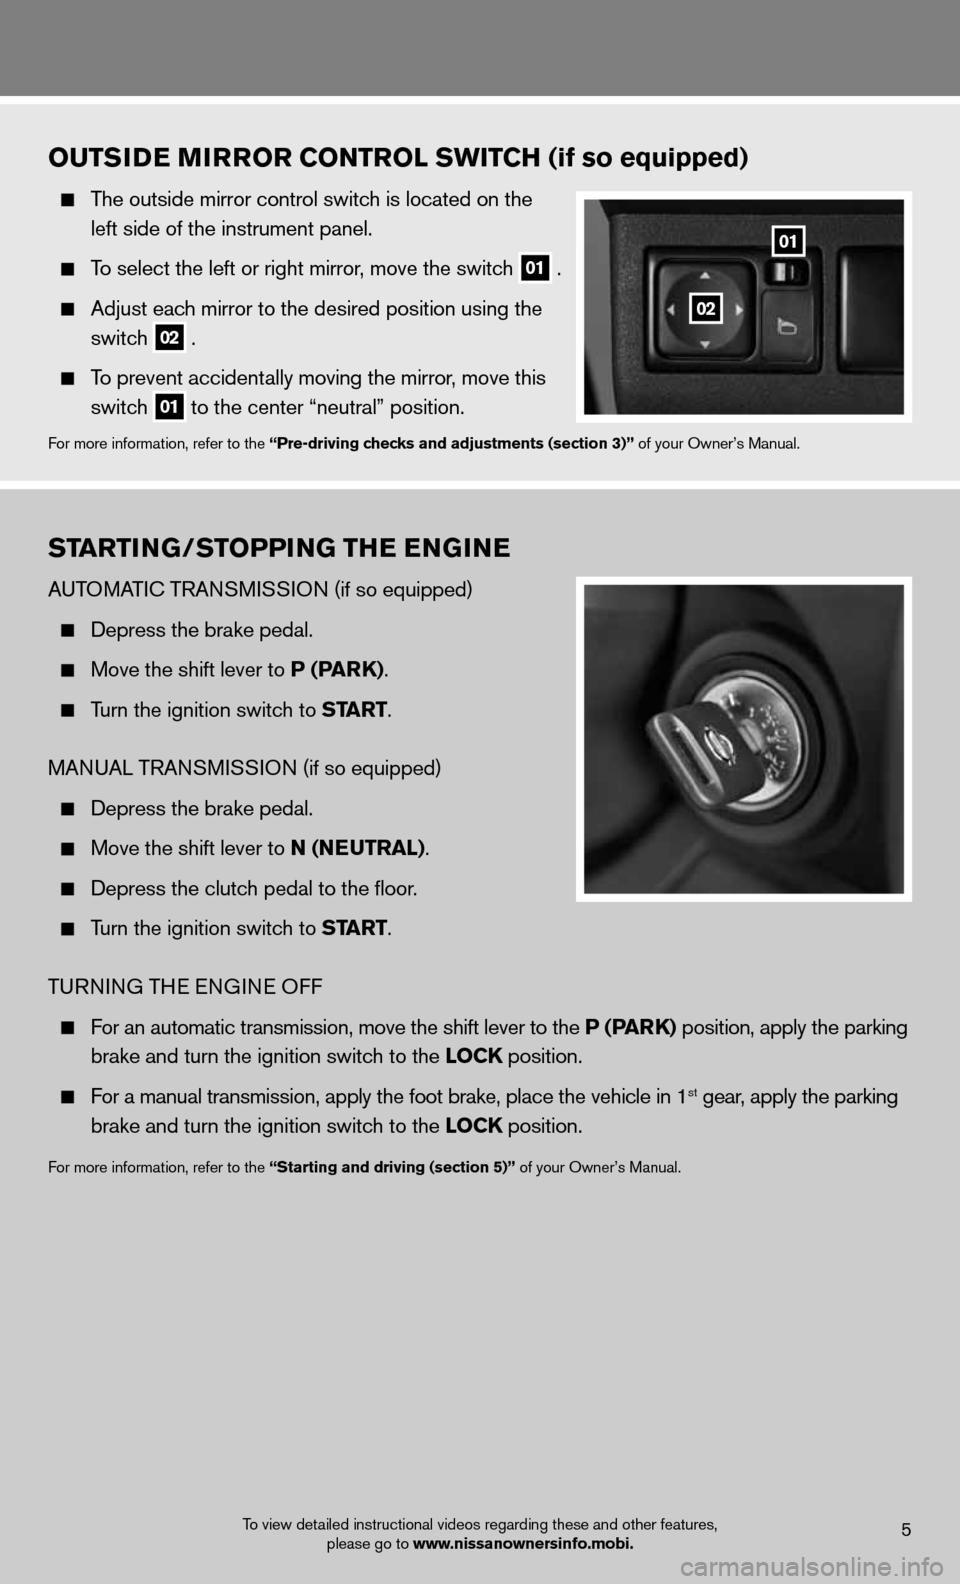 NISSAN XTERRA 2012 N50 / 2.G Quick Reference Guide startinG/stoPPin G tHE EnG in E AuTOMATic TRAn SMiSS iO n (if so equipped)       Depress the brake pedal.        Move the shift lever to P (P arK).      Turn the ignition switch to start.    MAnu AL T